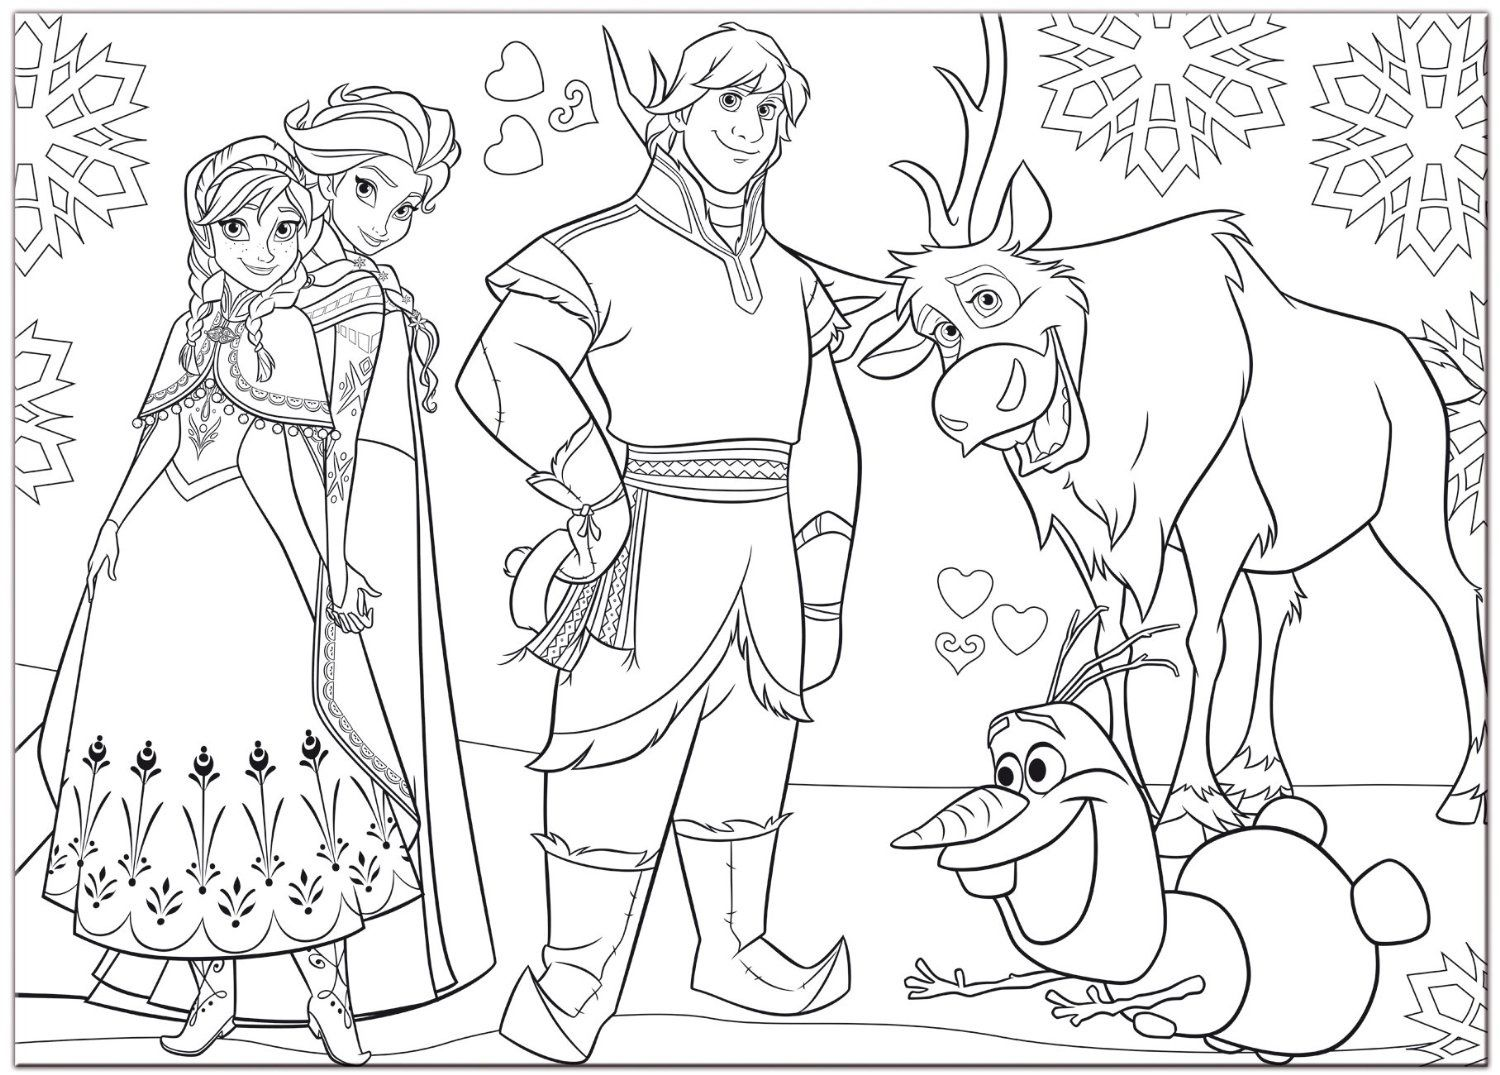 Pin by Inez barron on Coloring 5 | Disney coloring pages ...